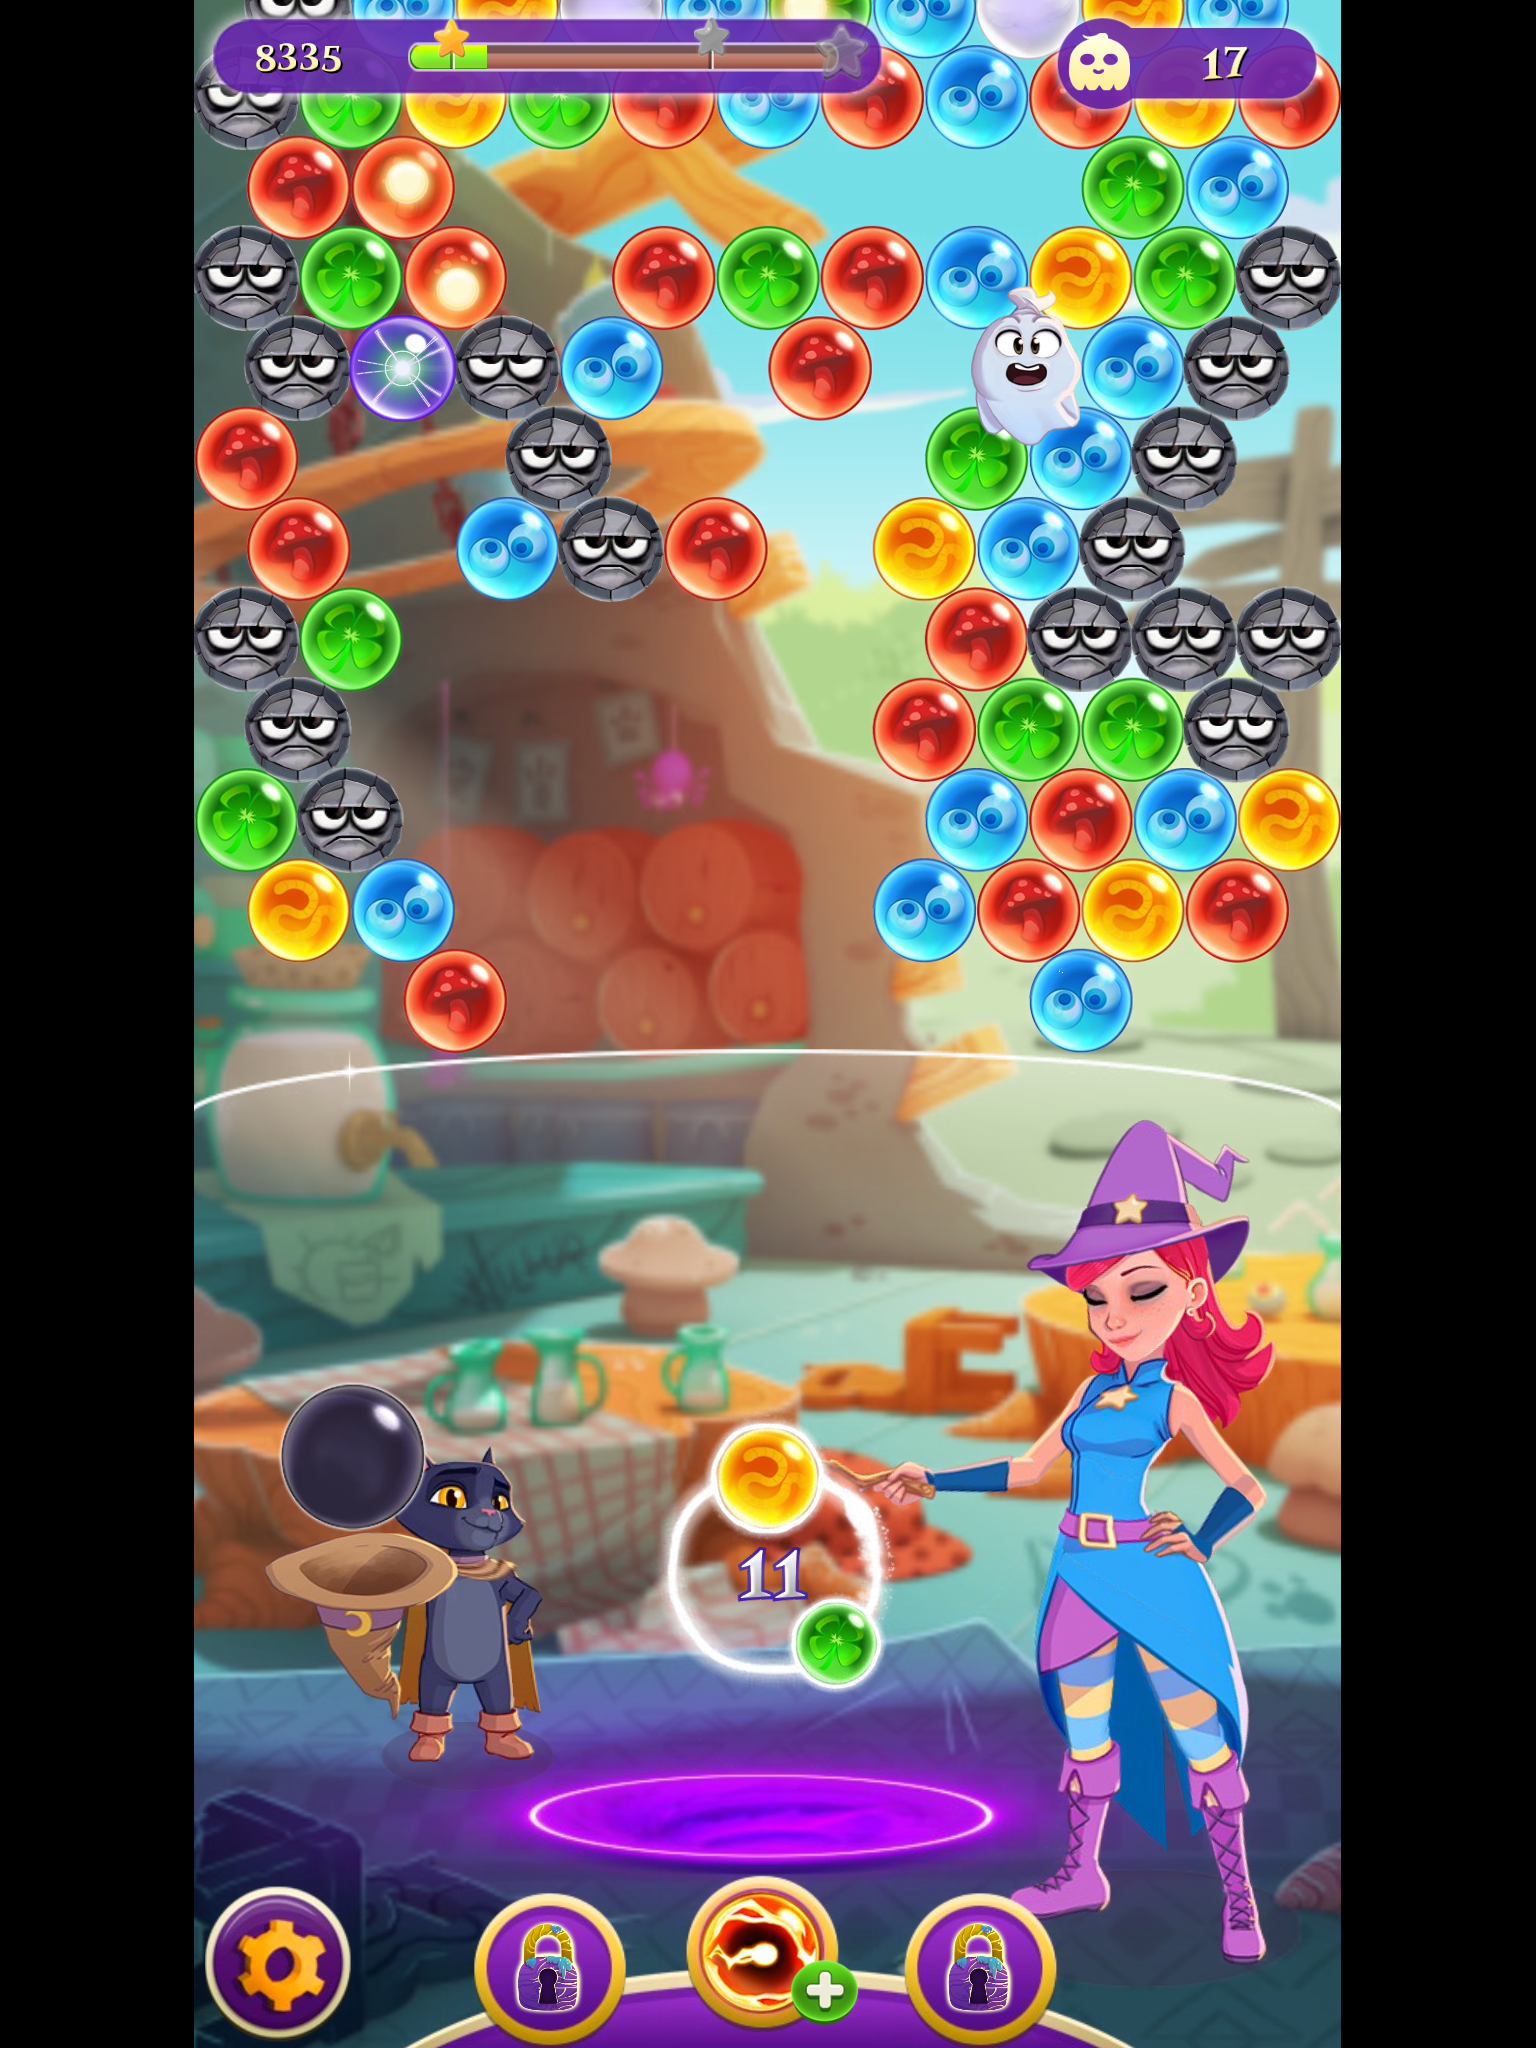 Bubble Witch Saga 3 review - More of the same, but a bit better